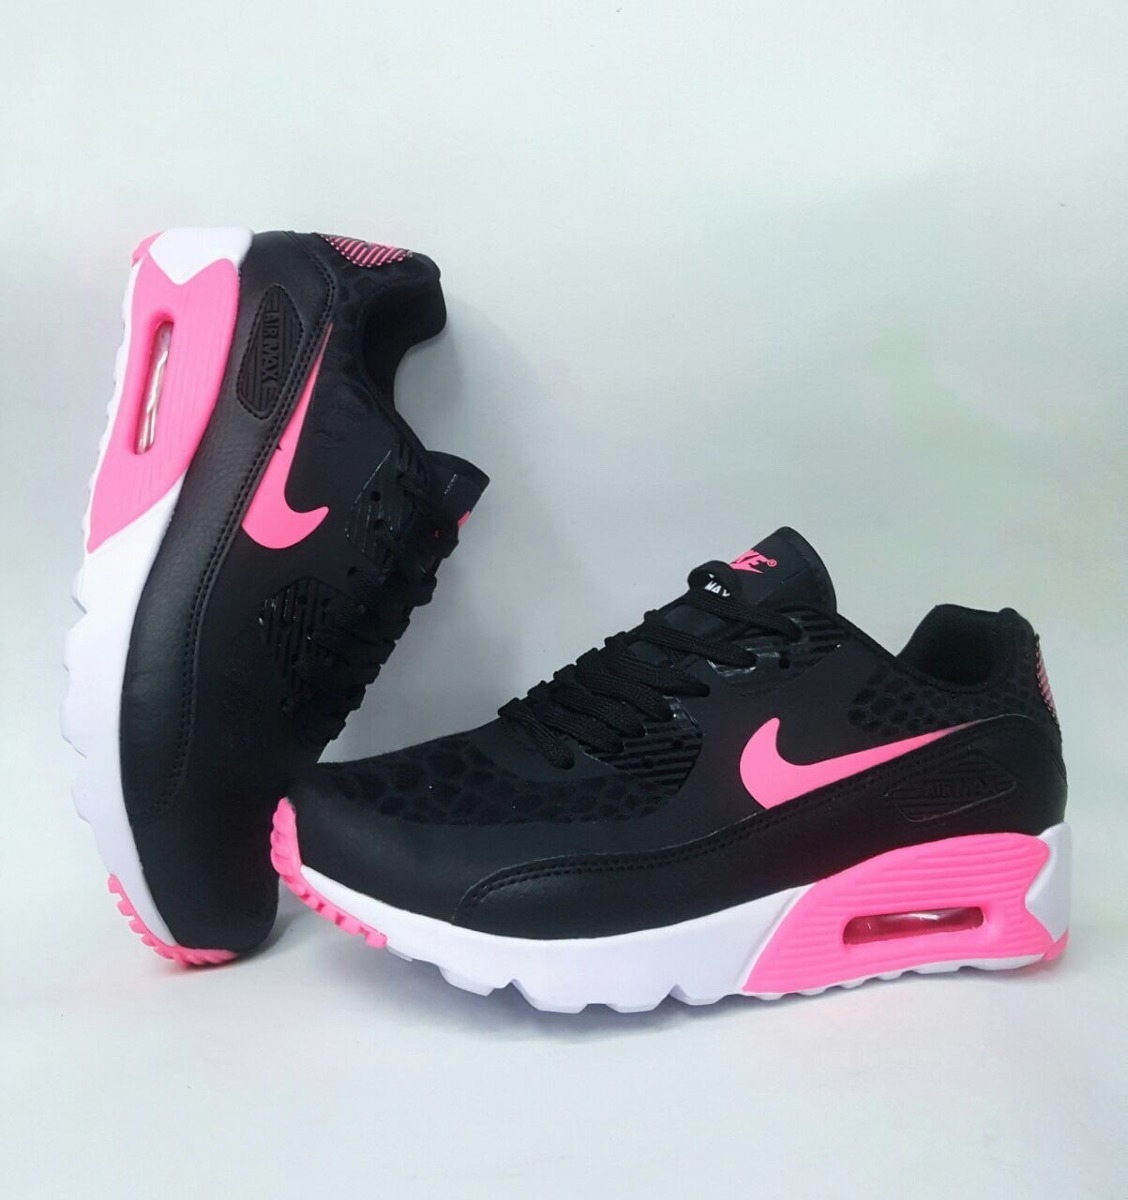 46fafbcbed6 coupon for tenis zapatillas nike air max 90 negra fucsia mujer. cargando  zoom. 1d42d